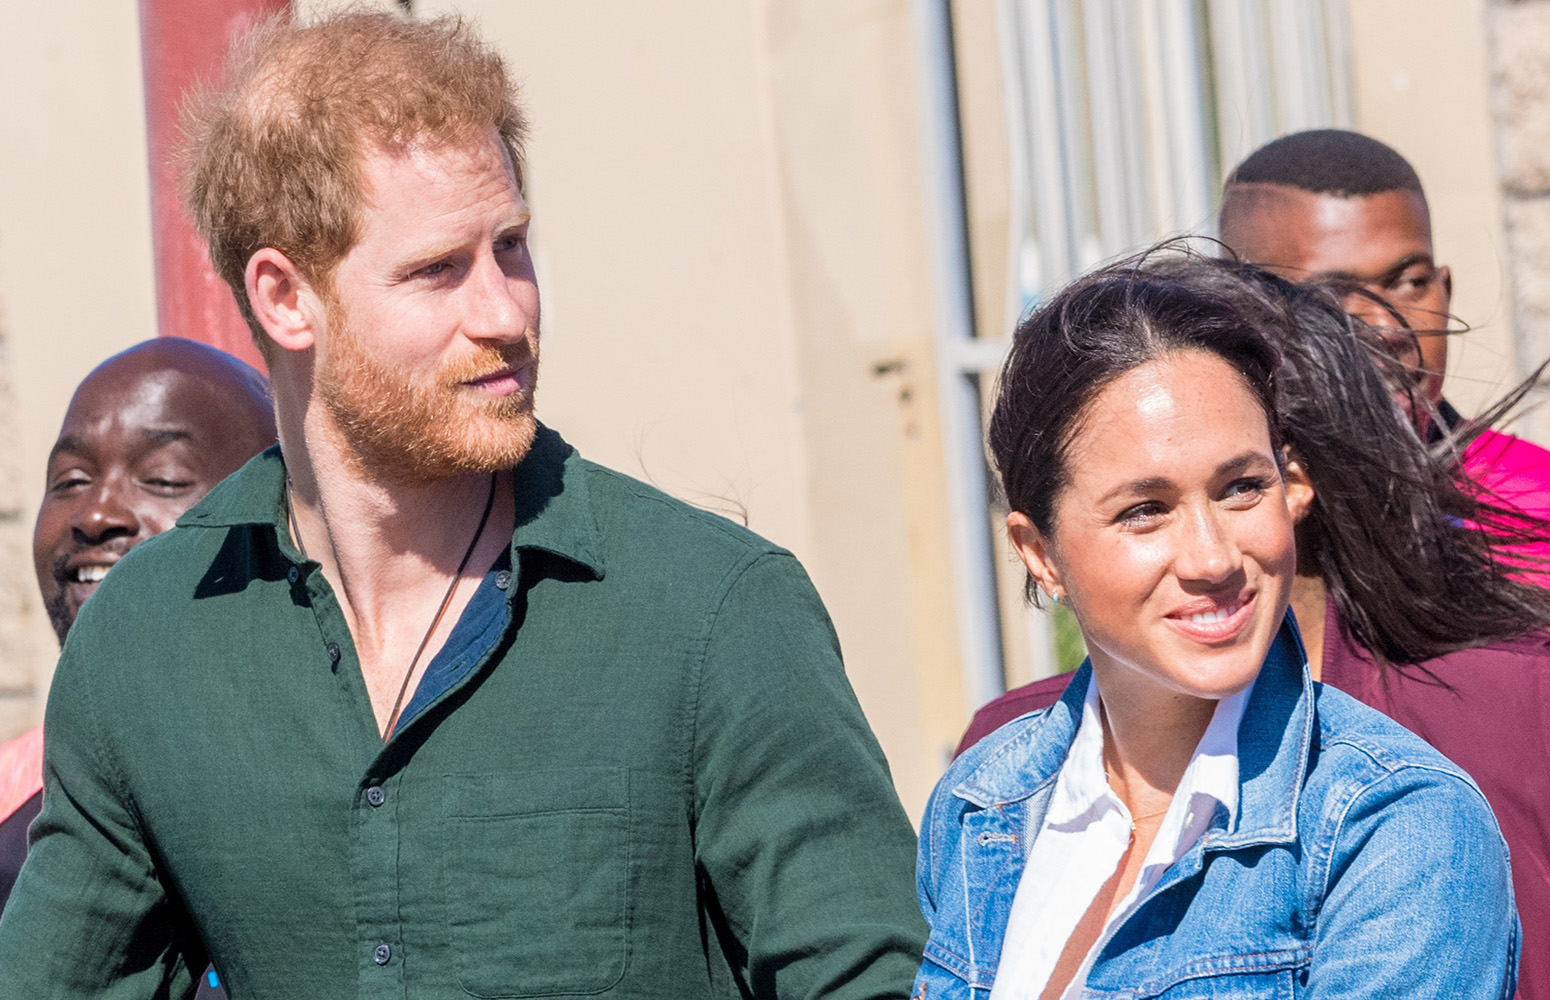 Harry and Meghan 'repaying £2.4 million Frogmore Cottage refurb at £18k a month'